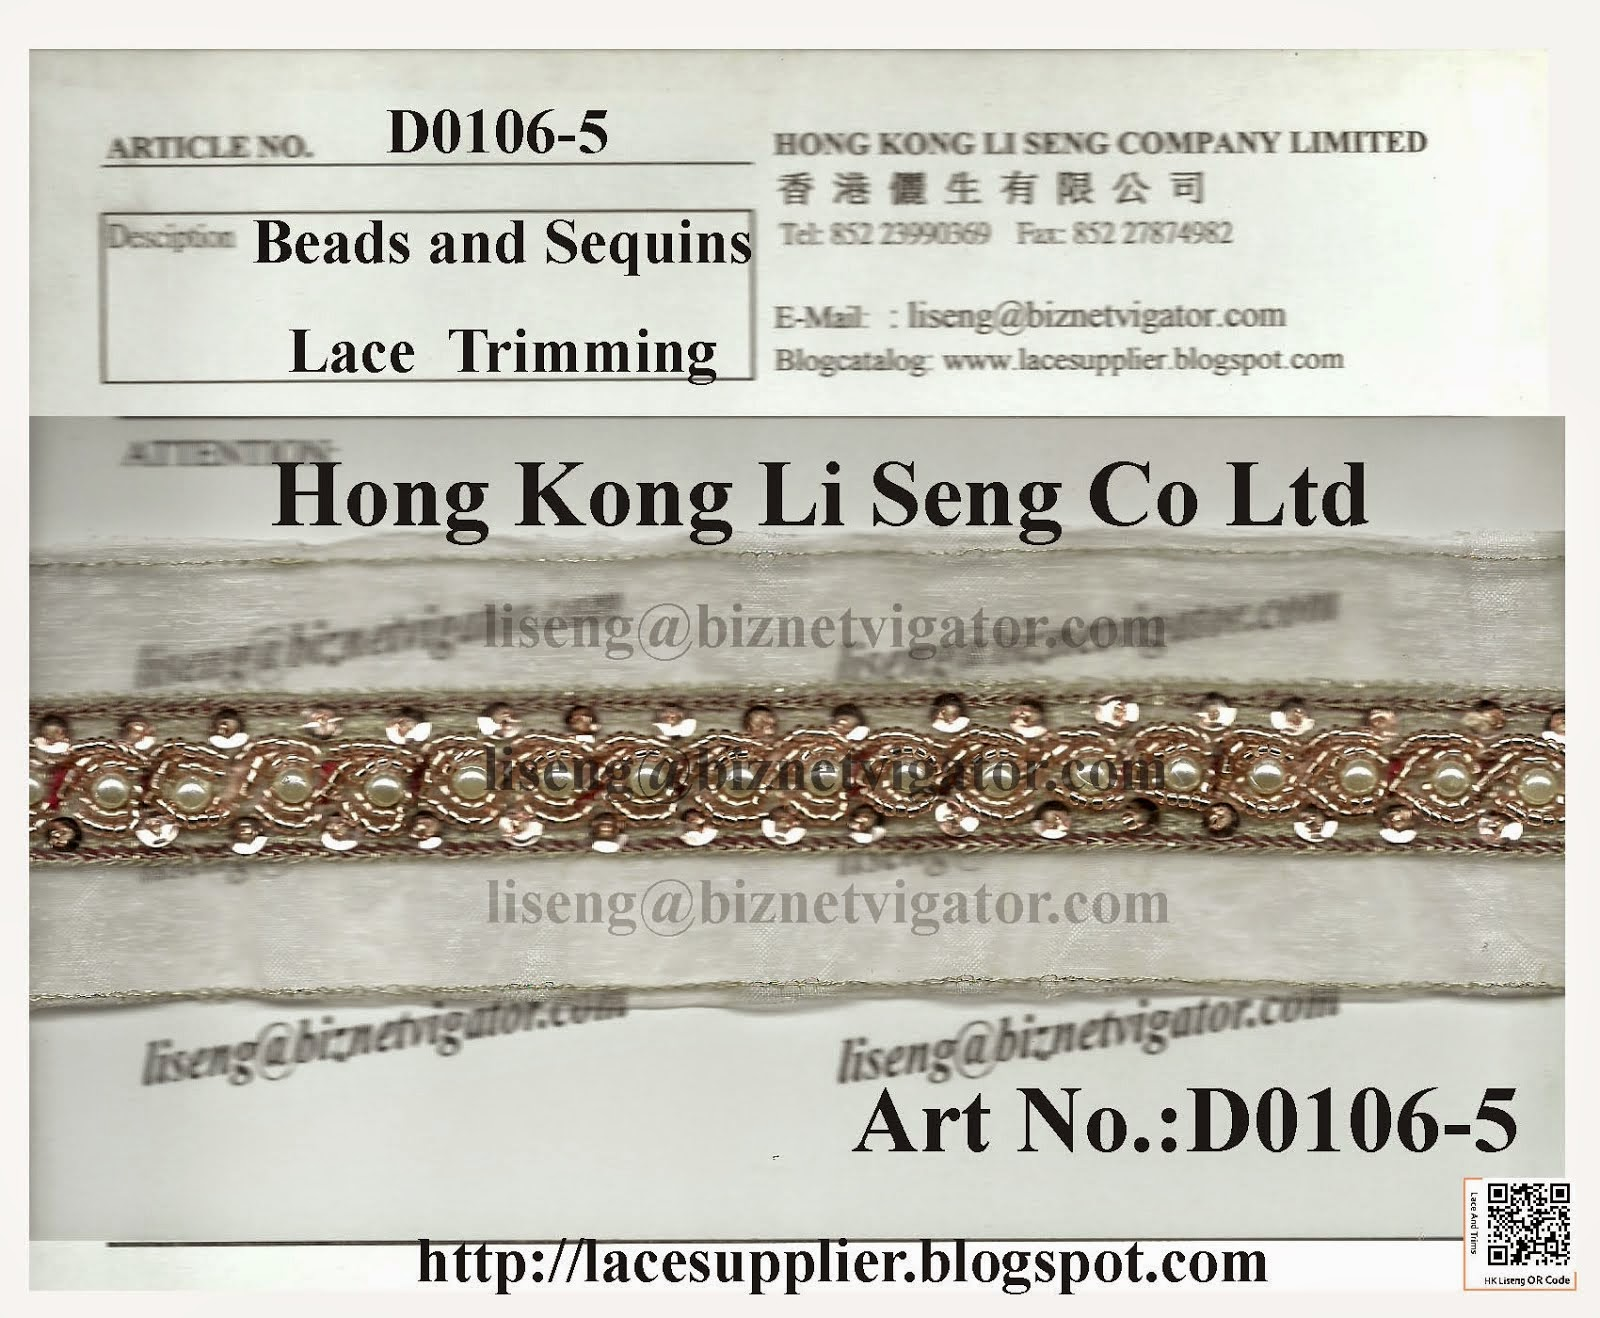 Beads and Sequins Trimming Manufacturer Wholesaler Supplier - Hong Kong Li Seng Co Ltd